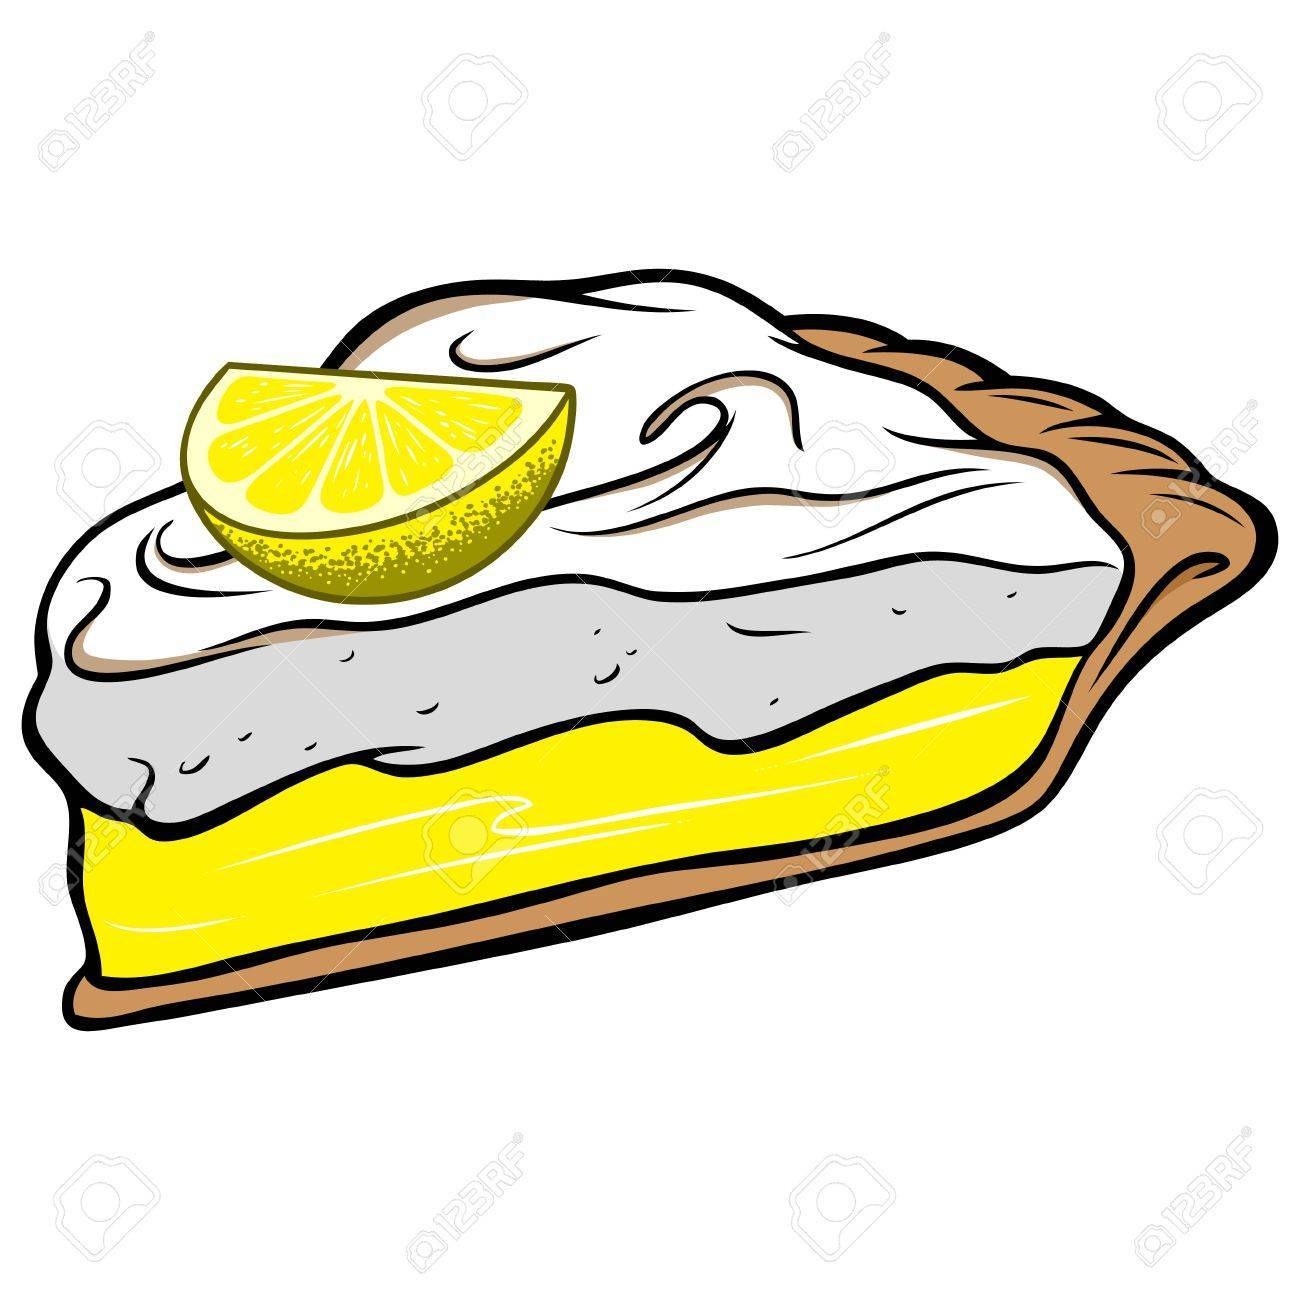 Lemon meringue pie clipart 3 » Clipart Portal.